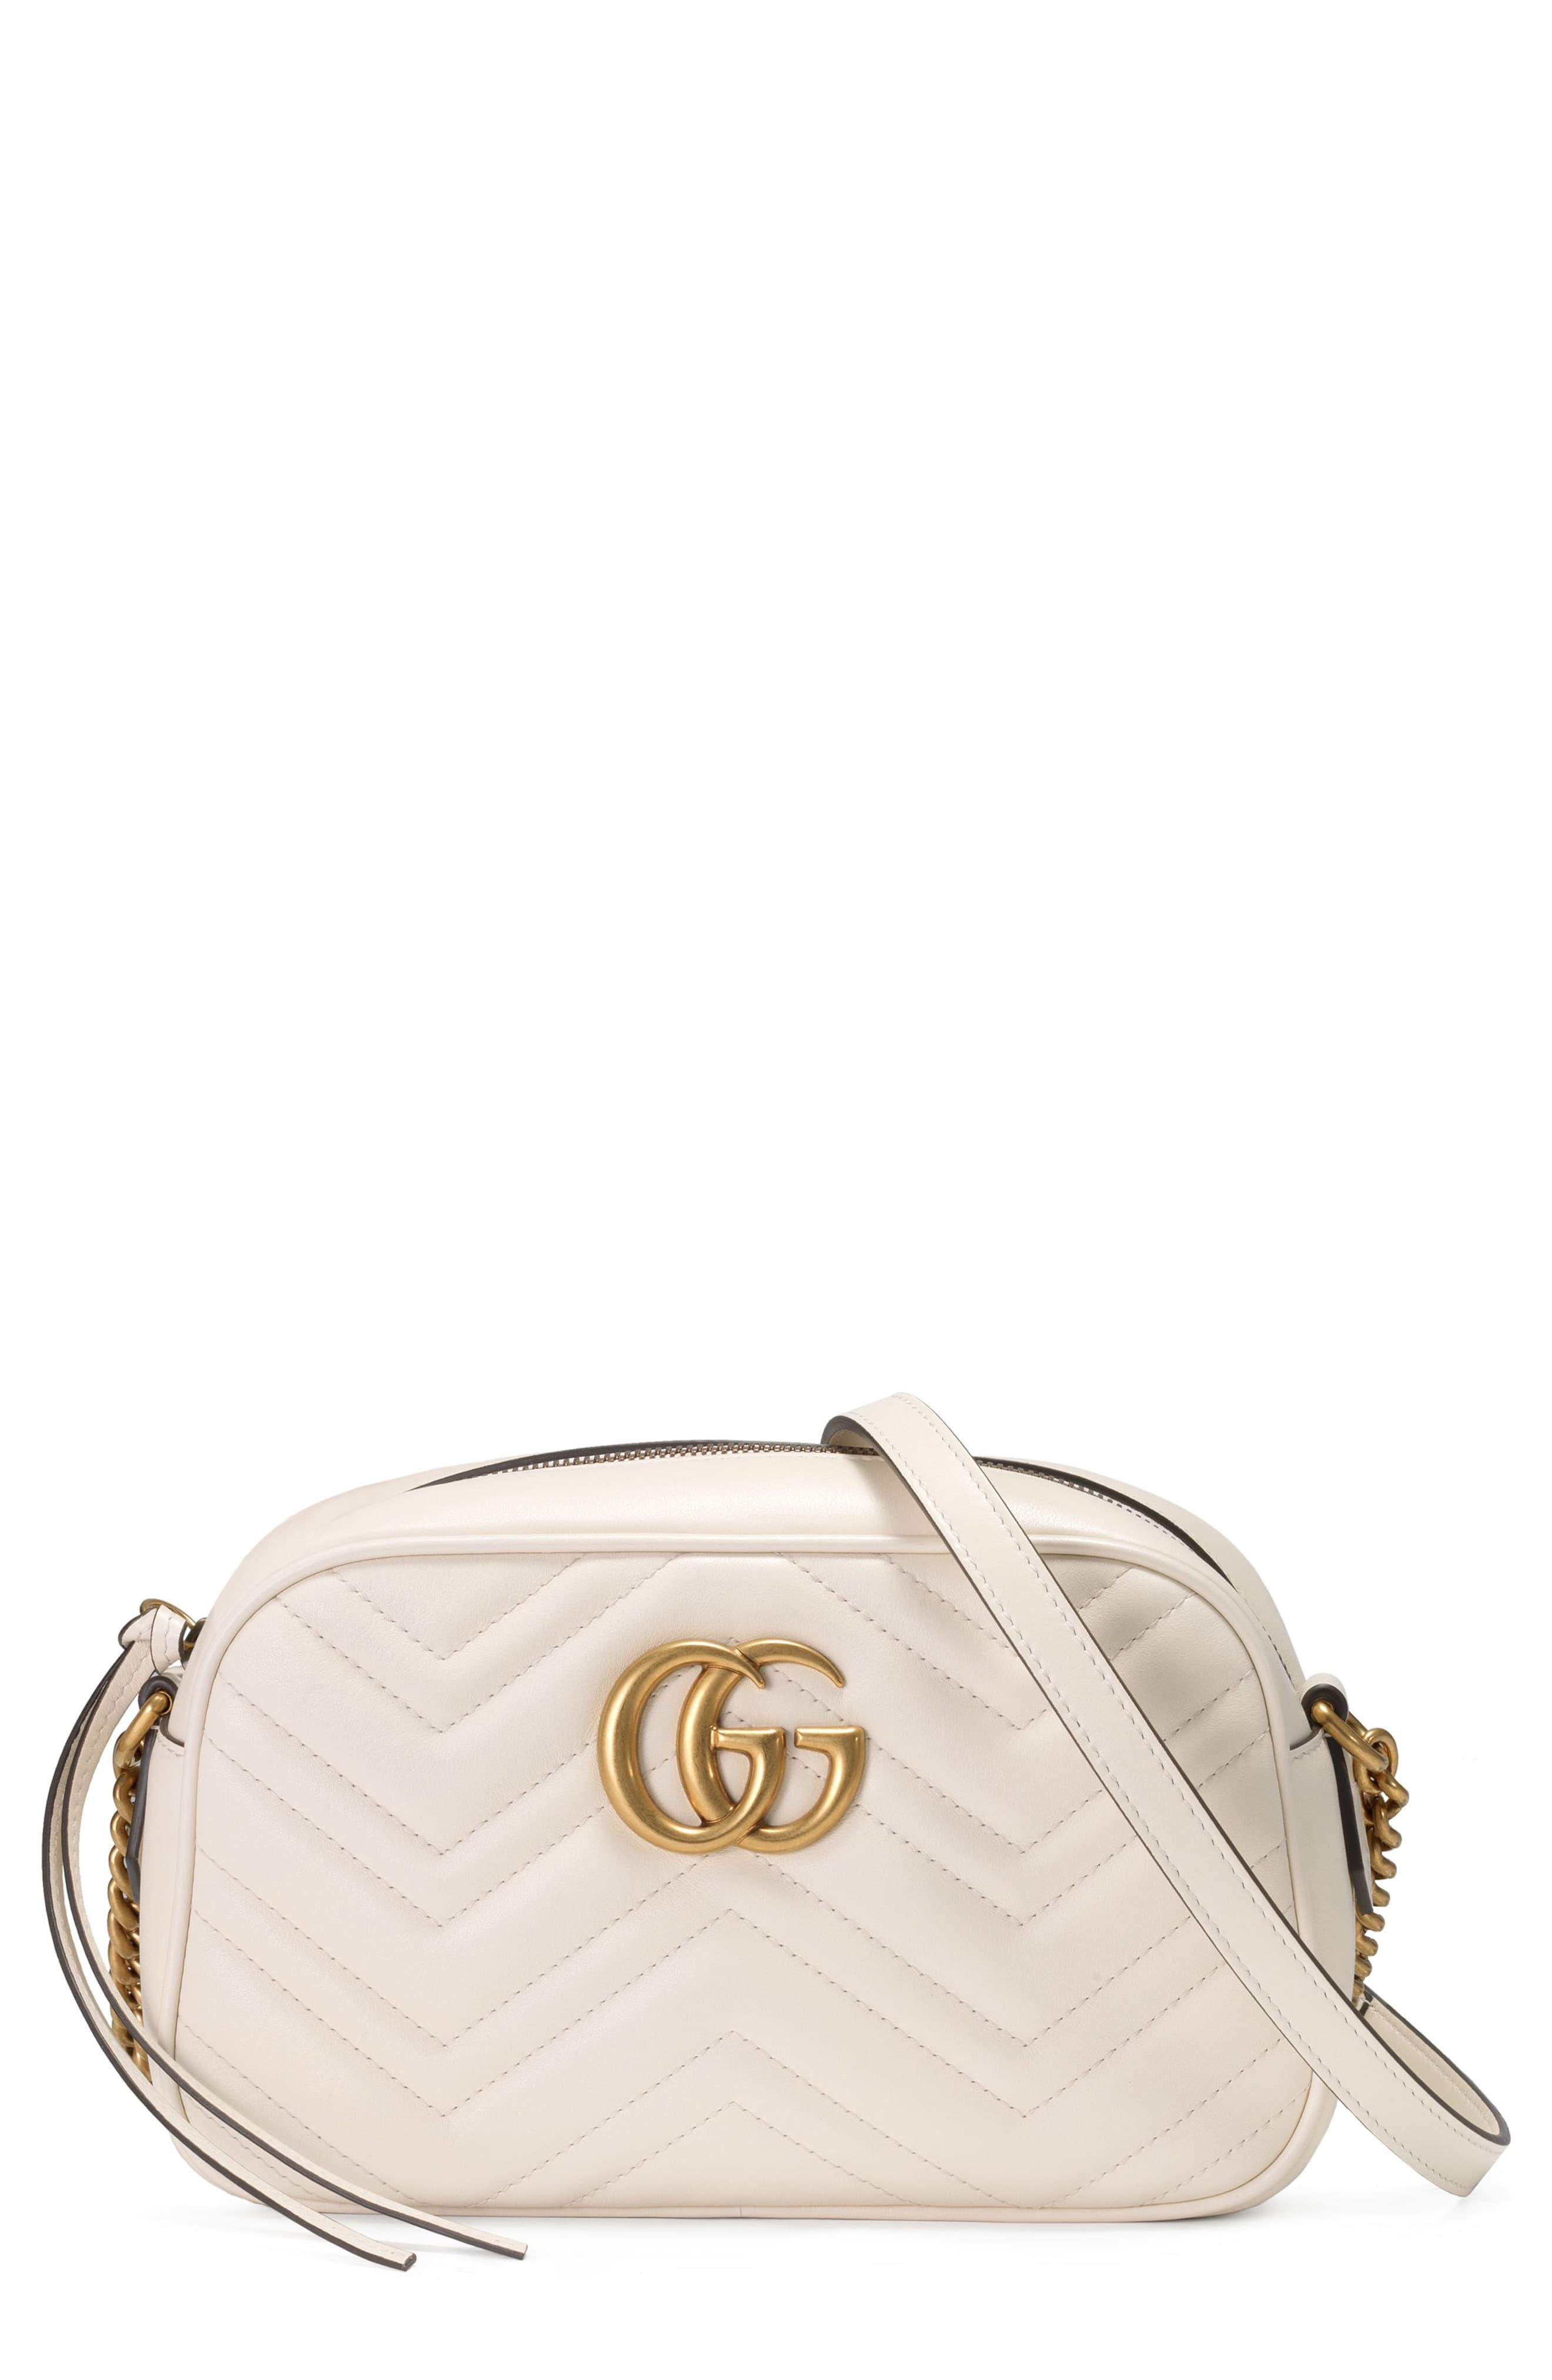 ccaa3ae4a92b Gucci Small Gg Marmont 2.0 Matelassé Leather Camera Bag in White - Lyst